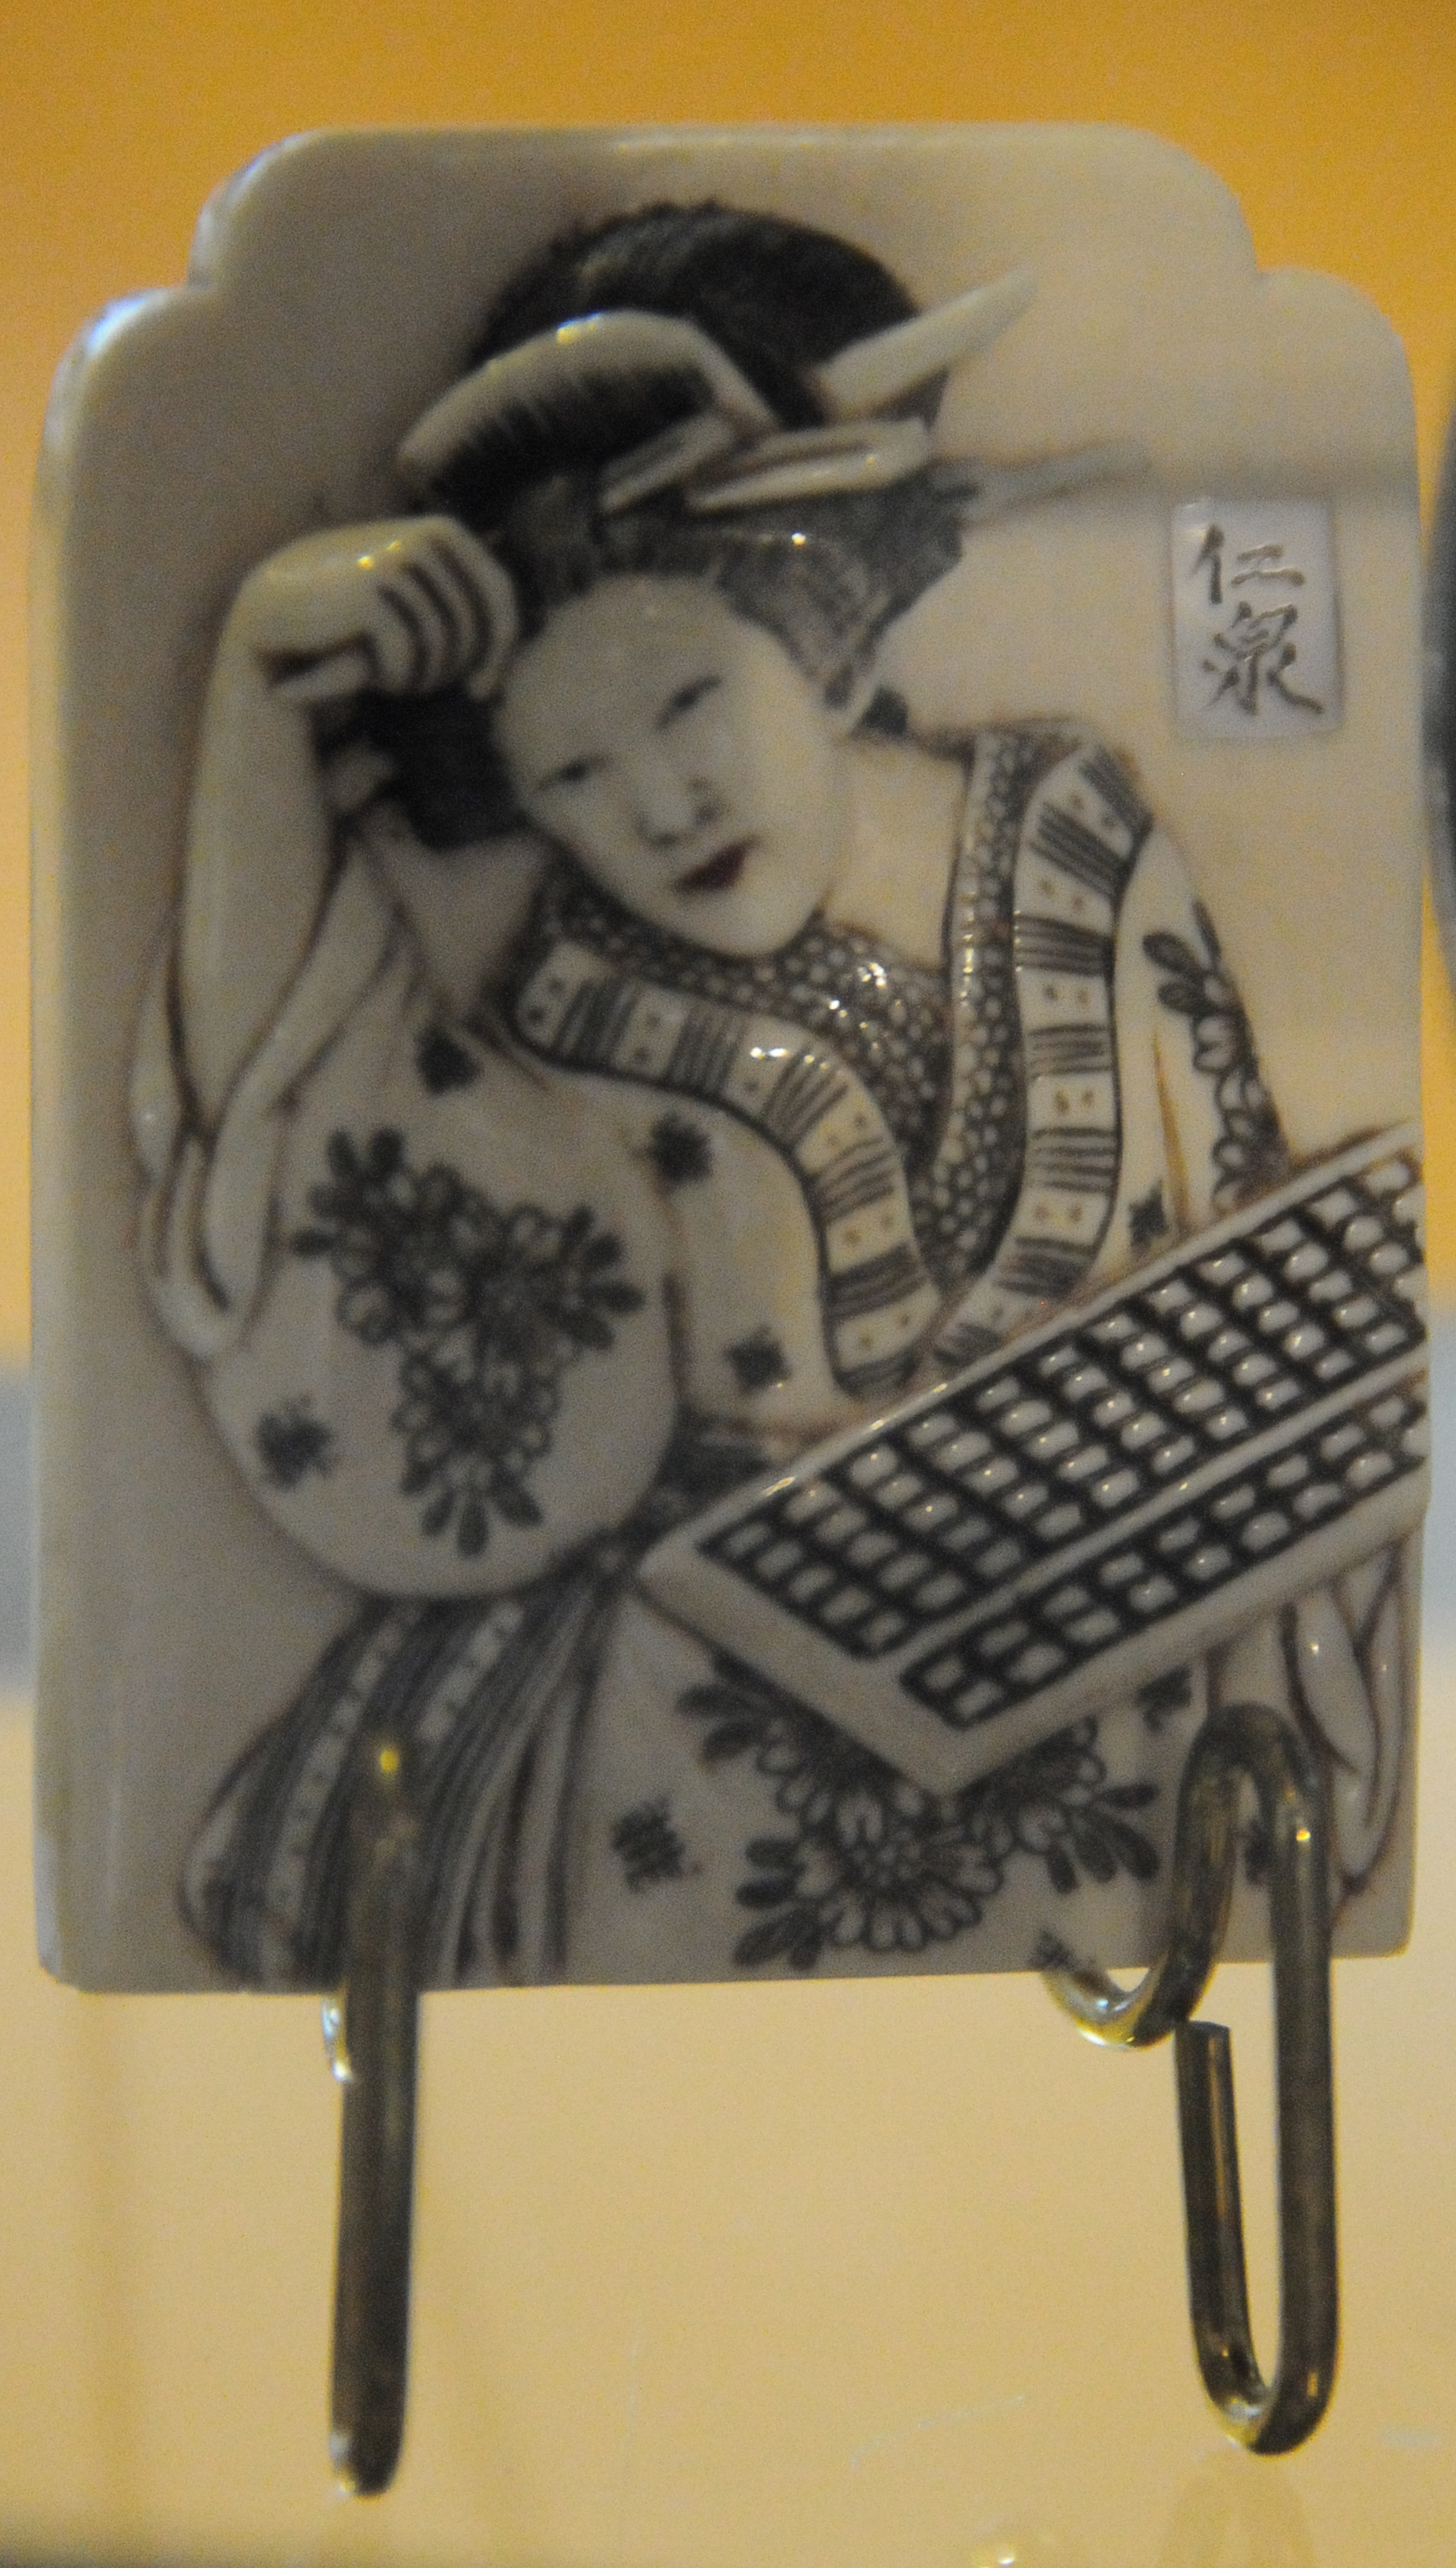 piece of ceramic jewelry depicting a woman holding a soroban